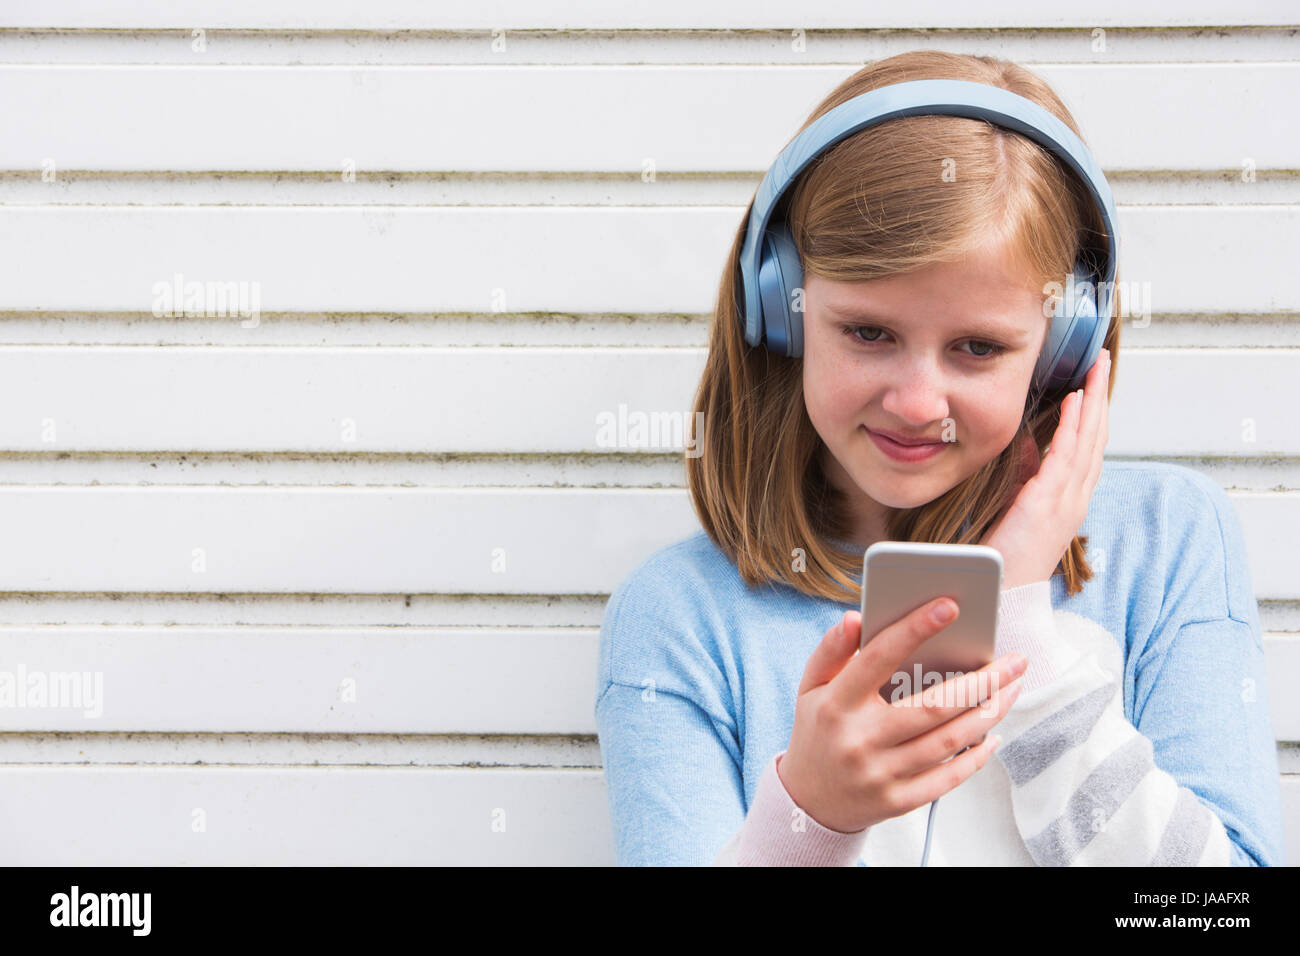 Pre Teen Girl Wearing Headphones And Listening To Music In Urban Setting - Stock Image